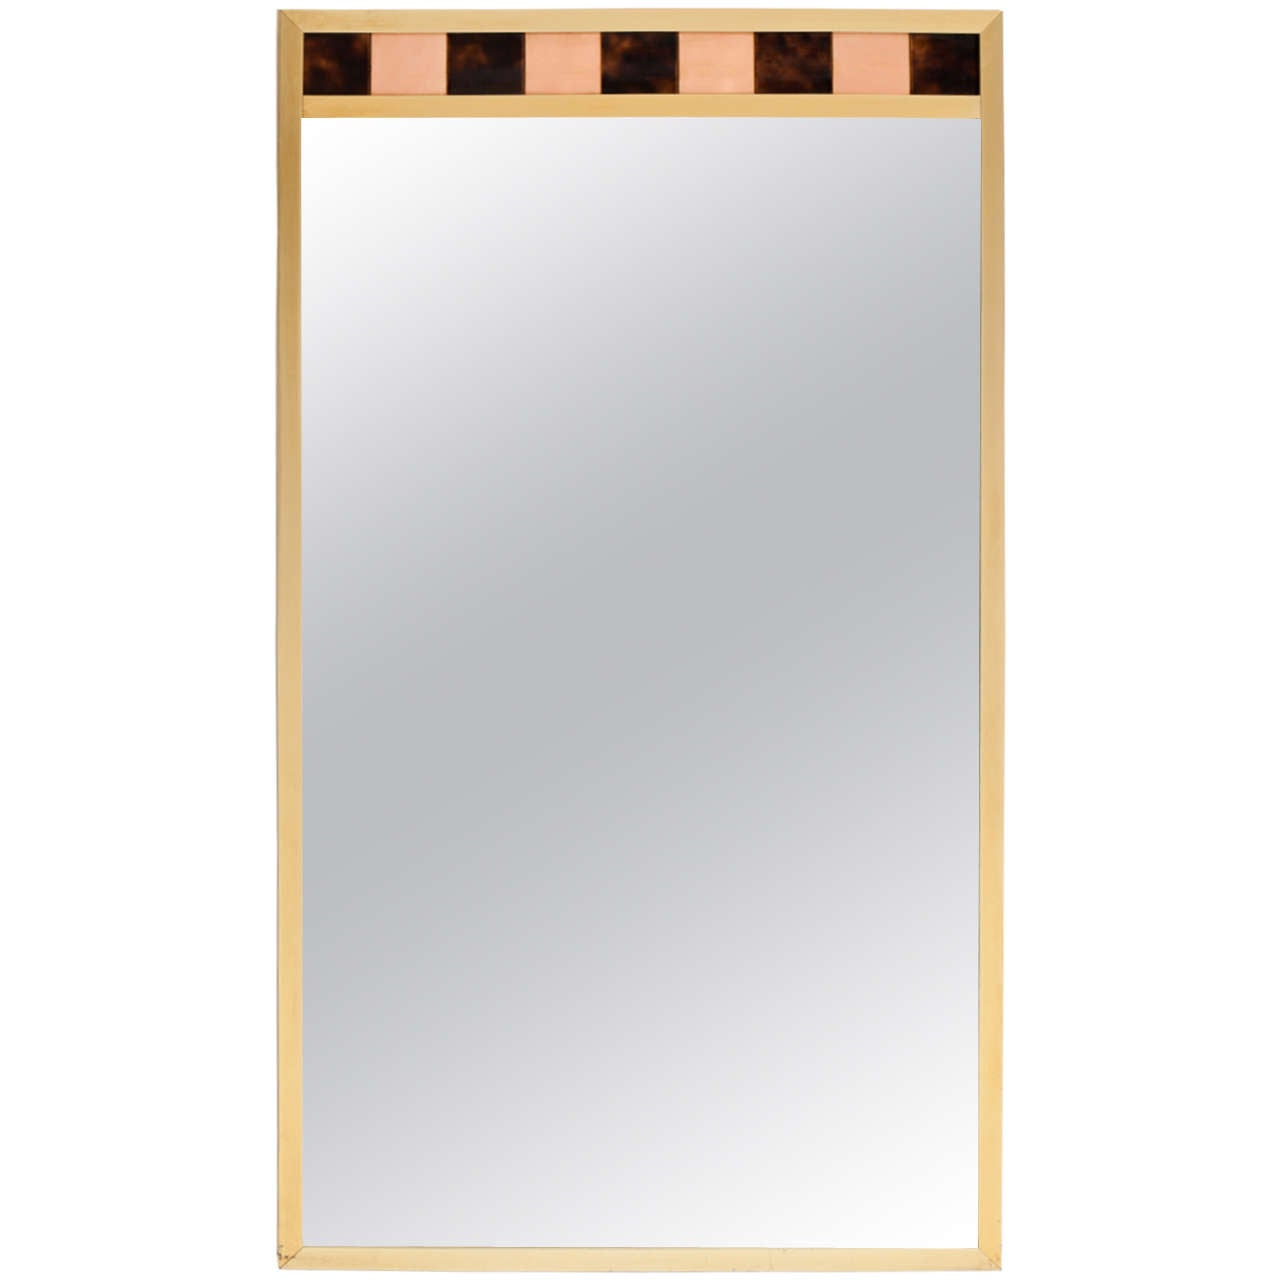 Brass Framed Mirror with Ceramic Tile Detail